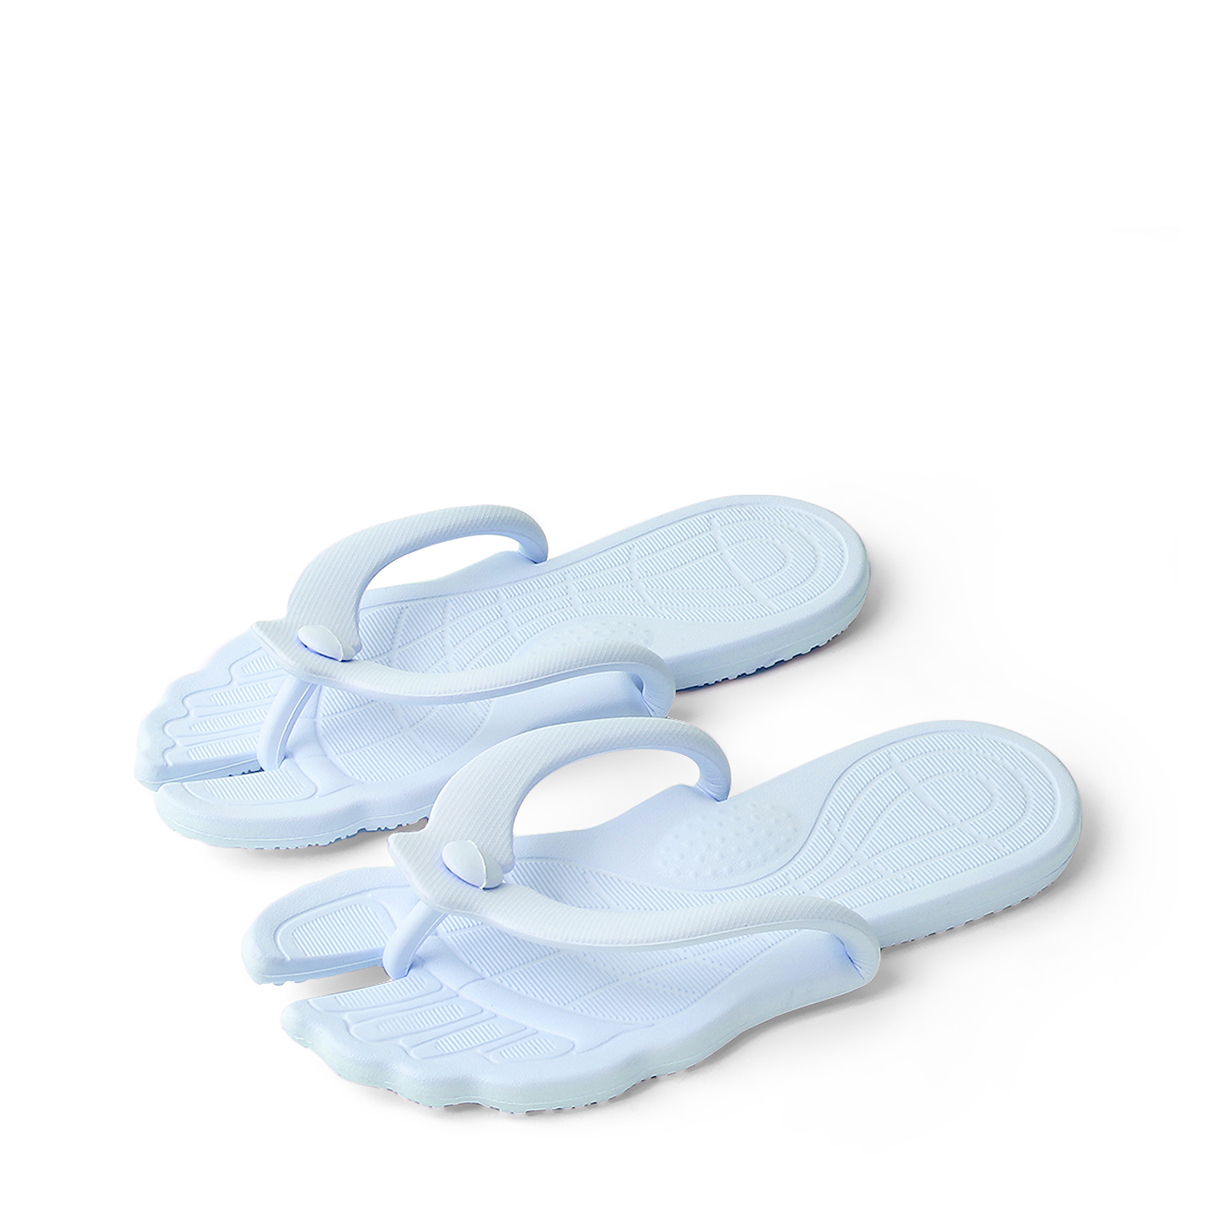 Fashion Light Blue Casual Thong Flat Slippers 1 set fashion pink casual wear outfit for 18 inch american girl gifts for kids